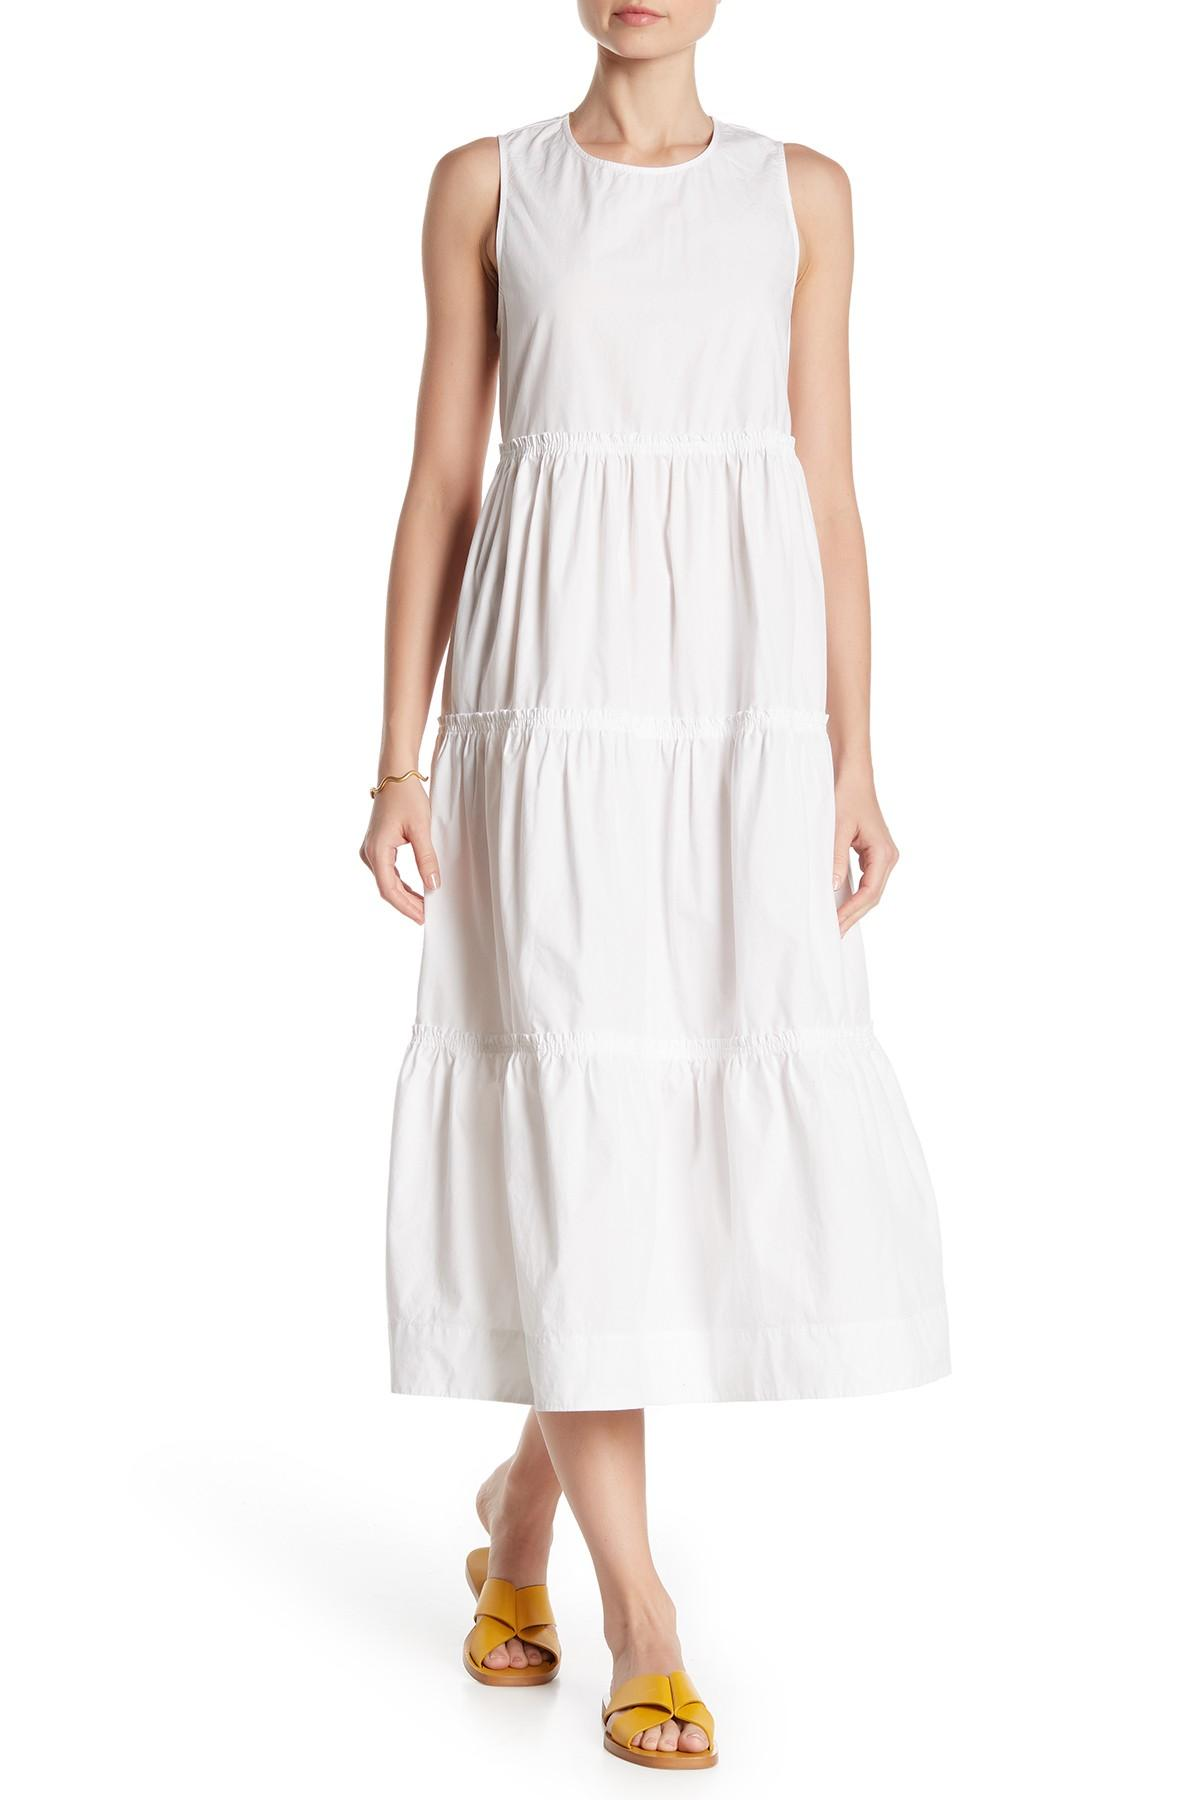 d268e27175d Lyst - Madewell Cattail Tiered Dress in White